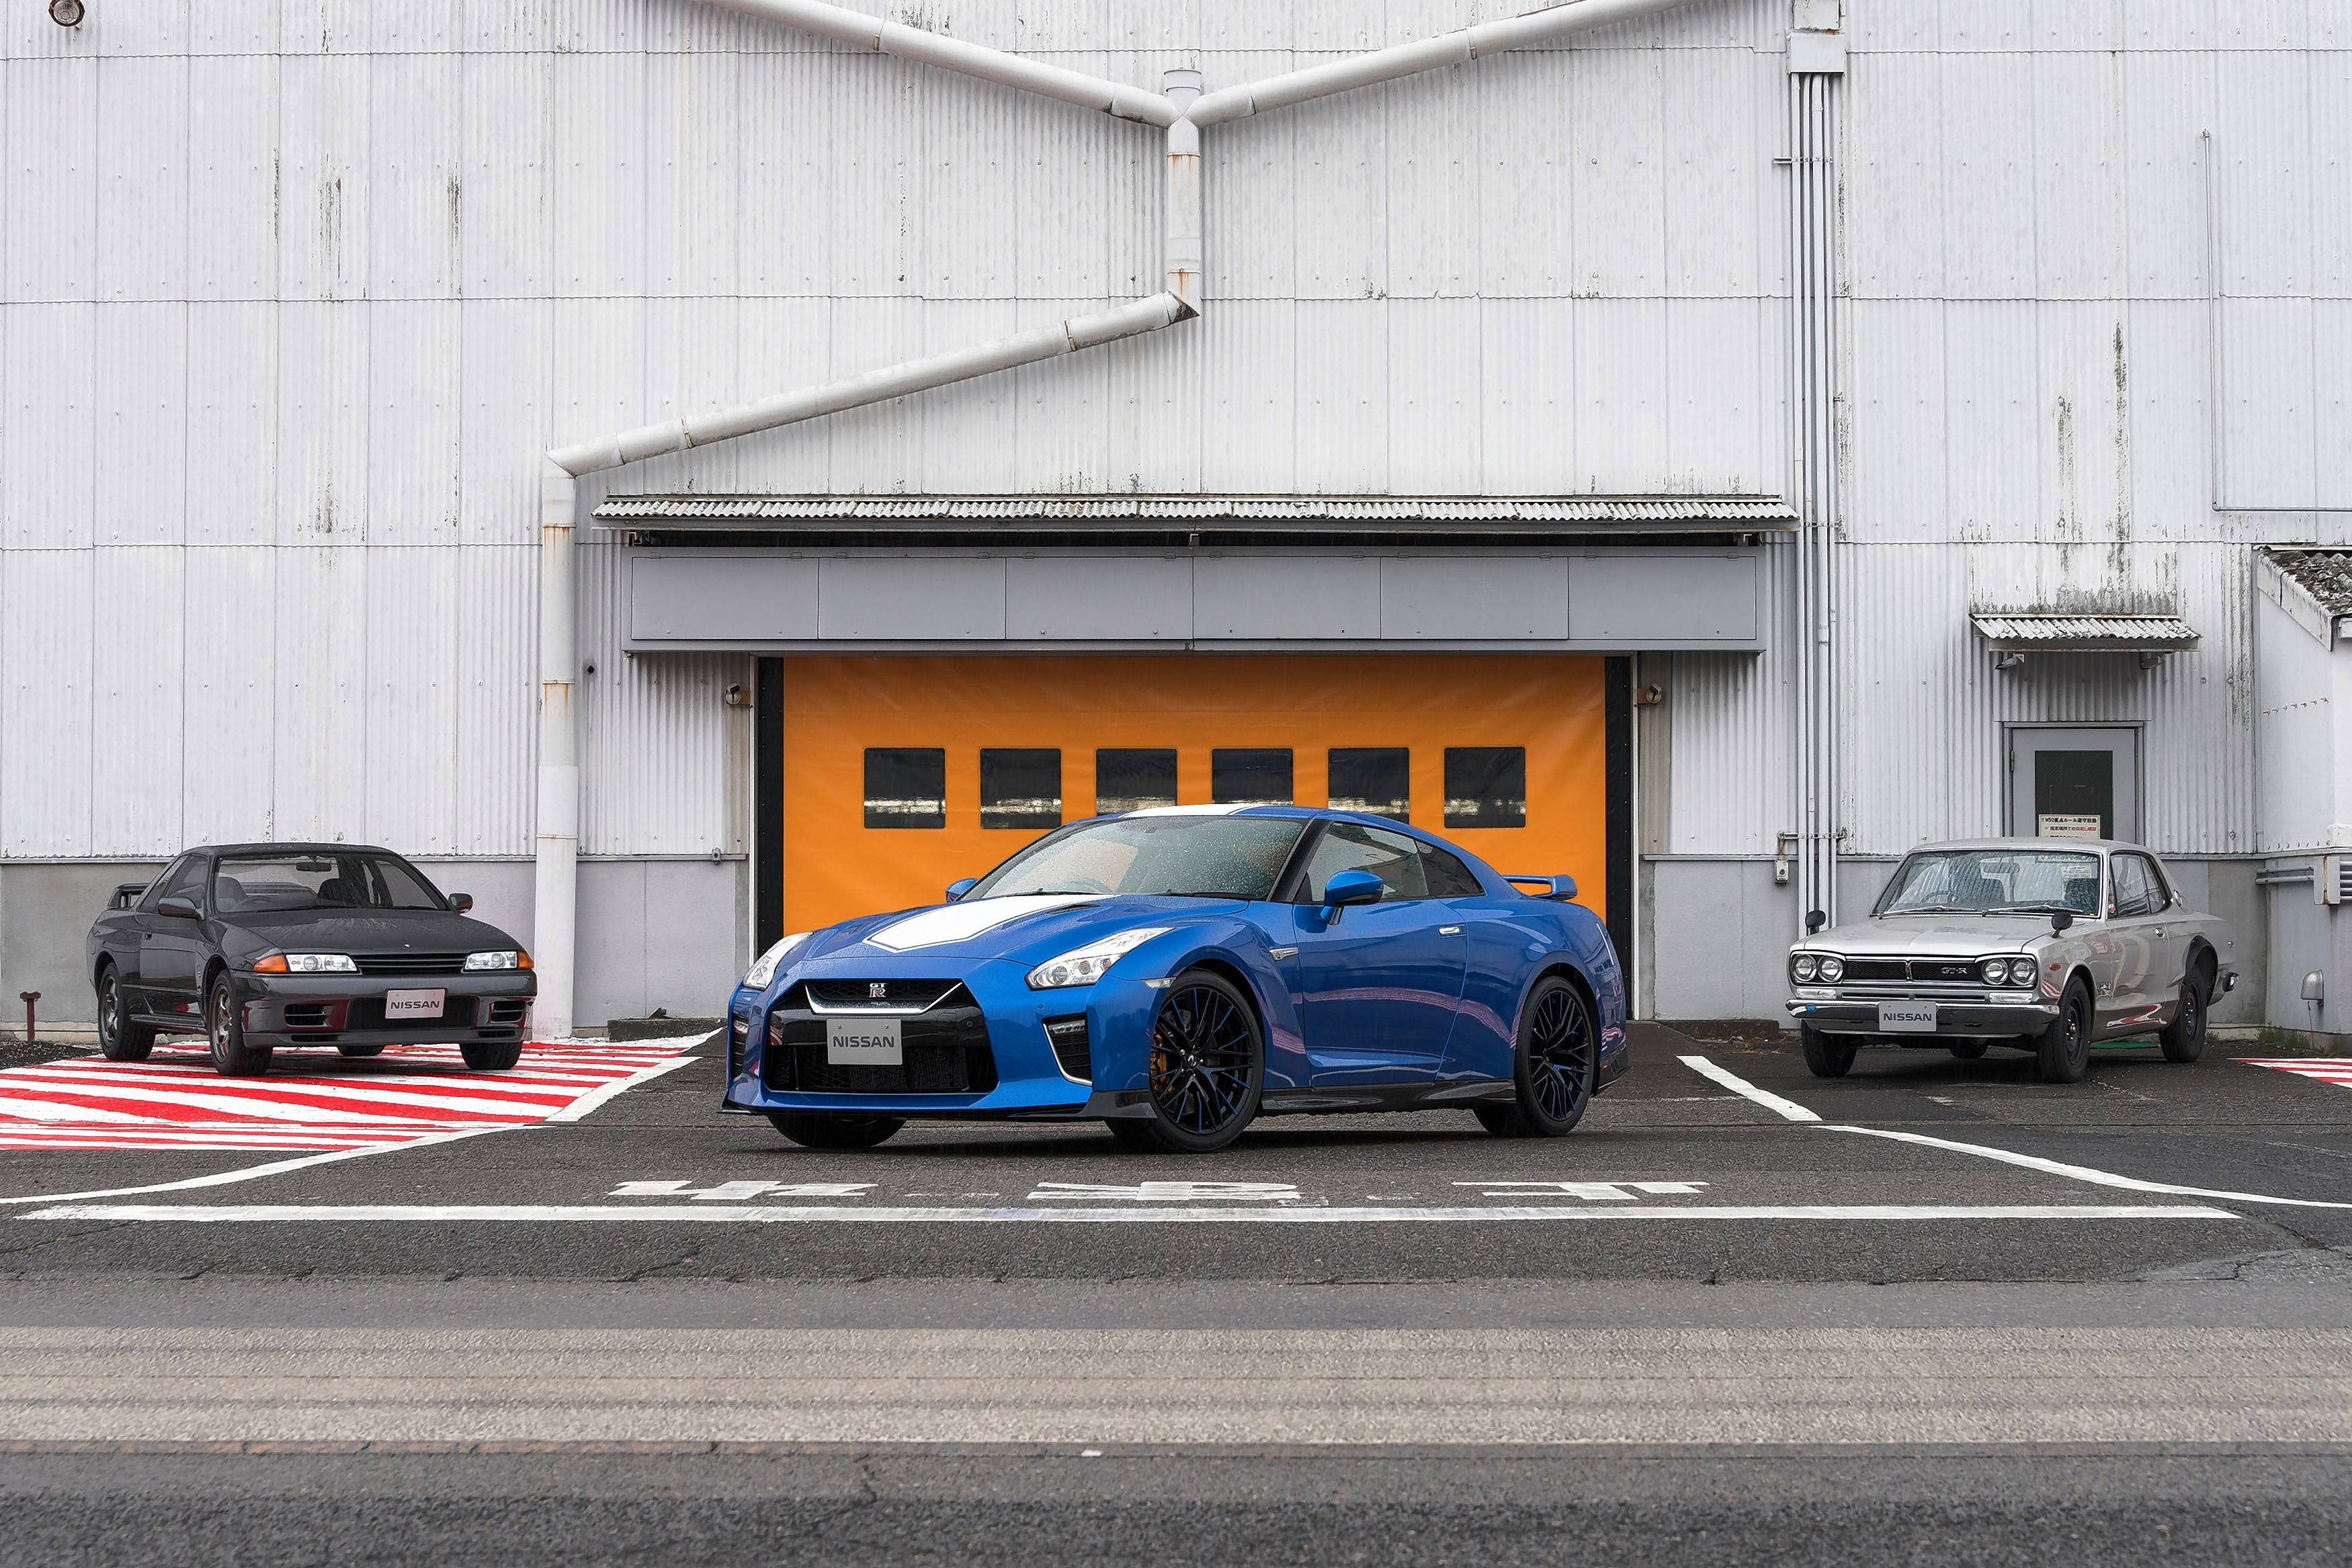 The 2020 Nissan GT-R 50th Anniversary Edition takes the nameplate to a new level of evolution since its first introduction in 1969.